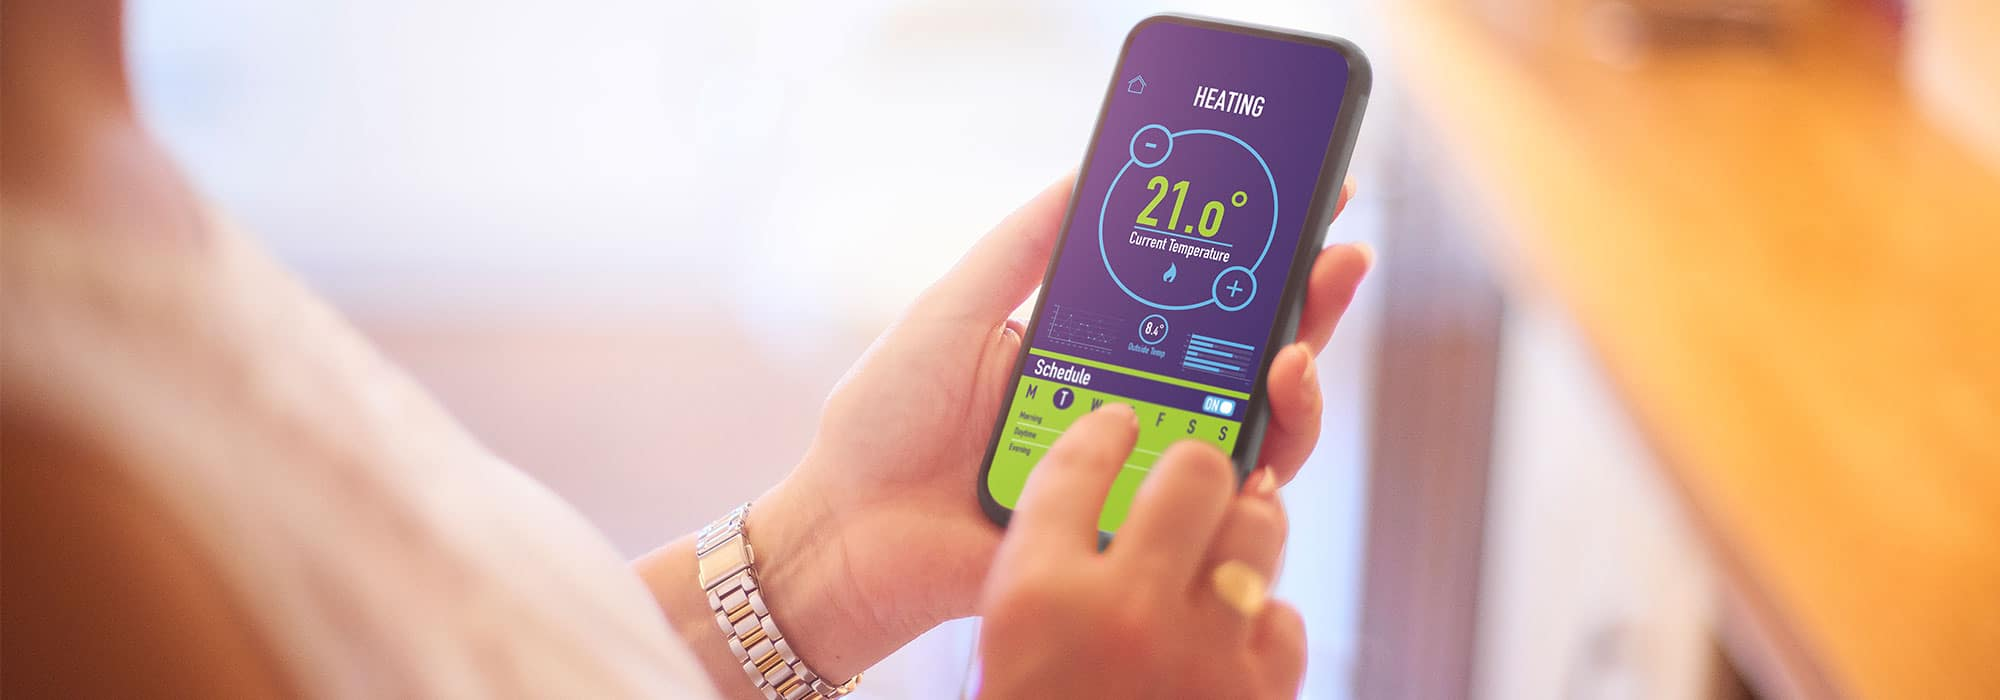 Can My HVAC System Benefit From a Smart Thermostat?